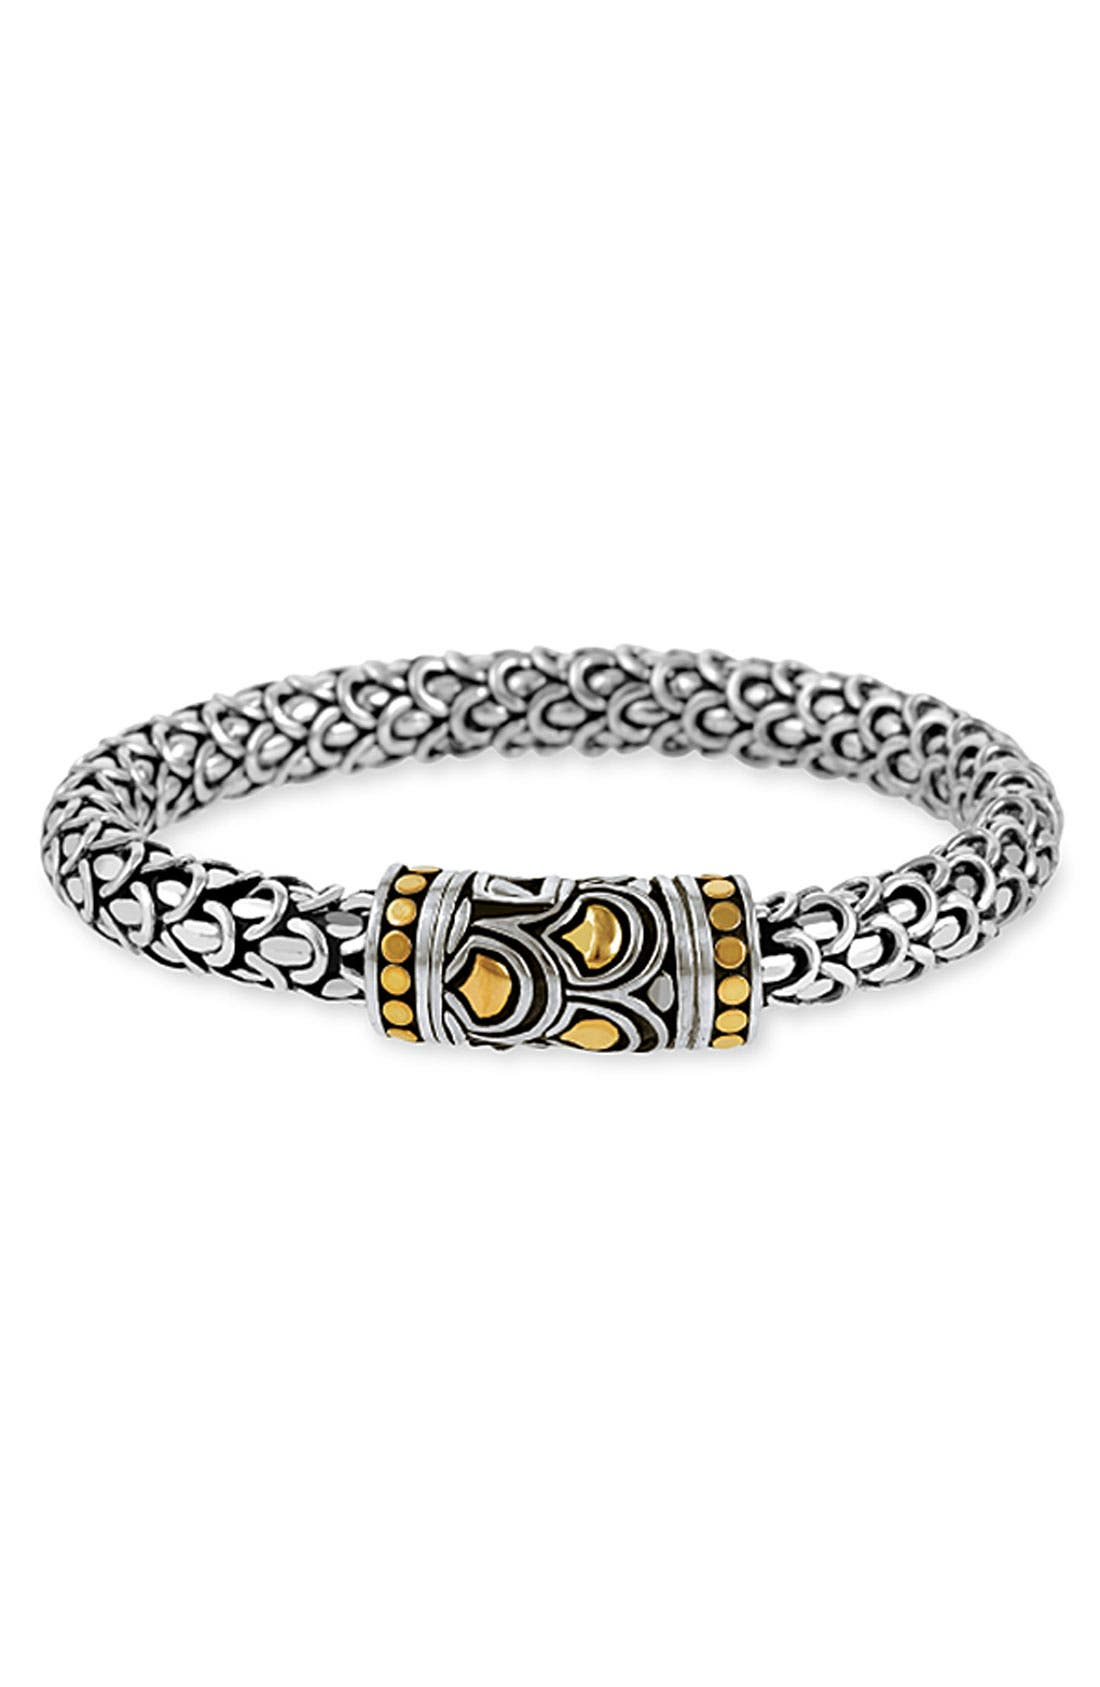 Alternate Image 1 Selected - John Hardy 'Naga' Silver & Gold Bracelet